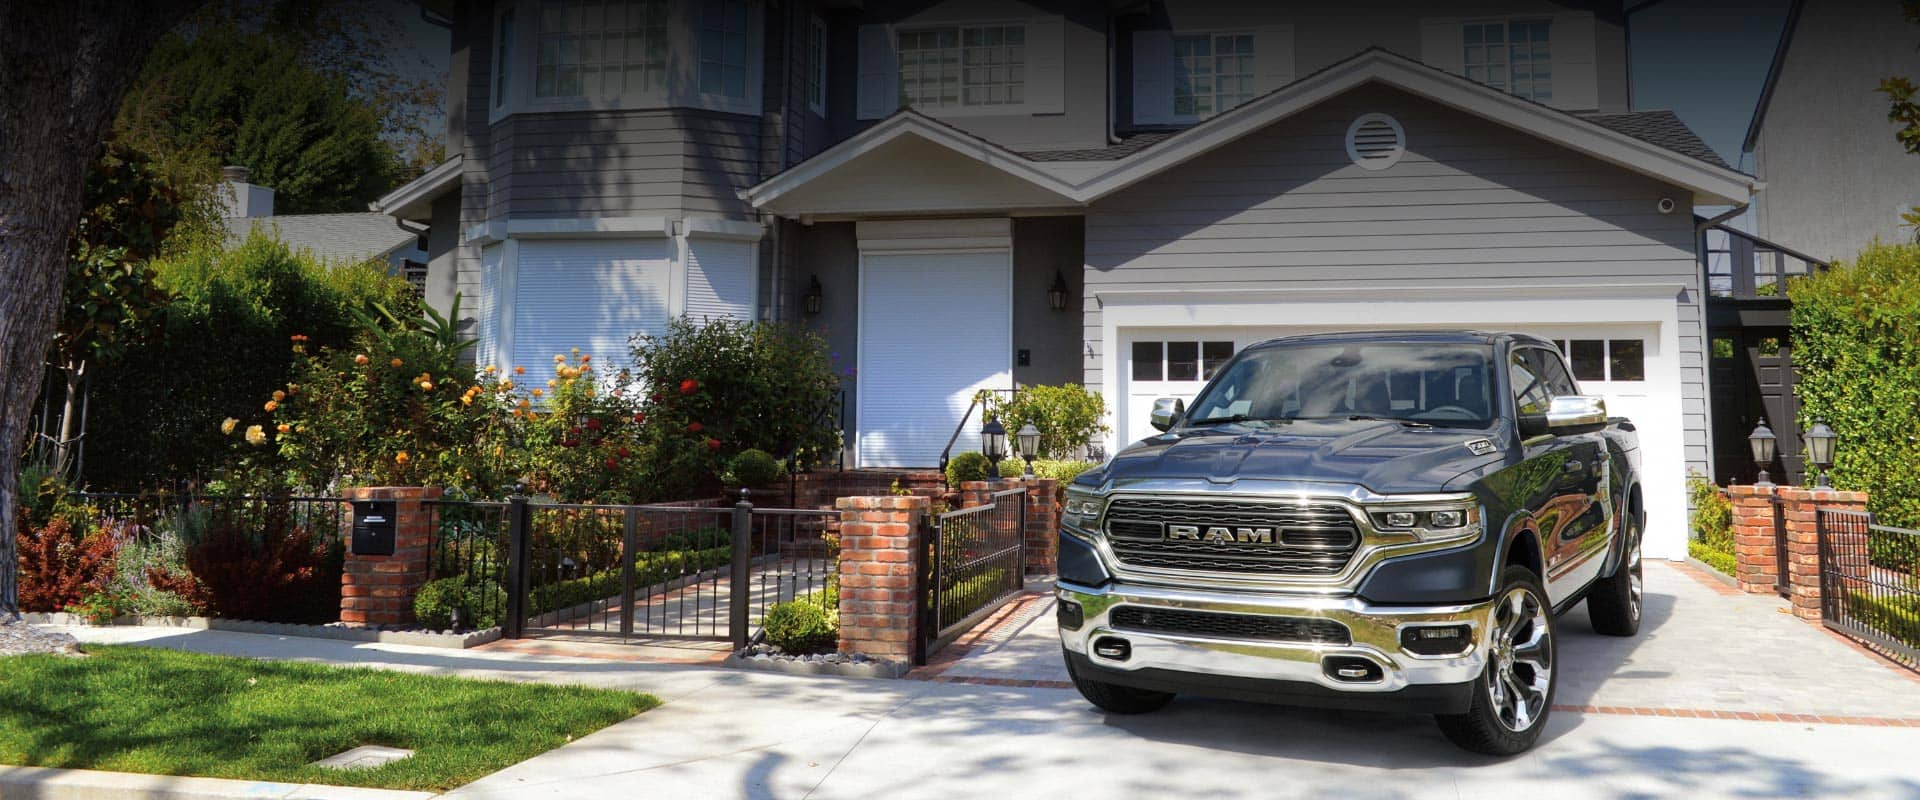 2020 Ram 1500 Limited parked in the driveway of a suburban home.